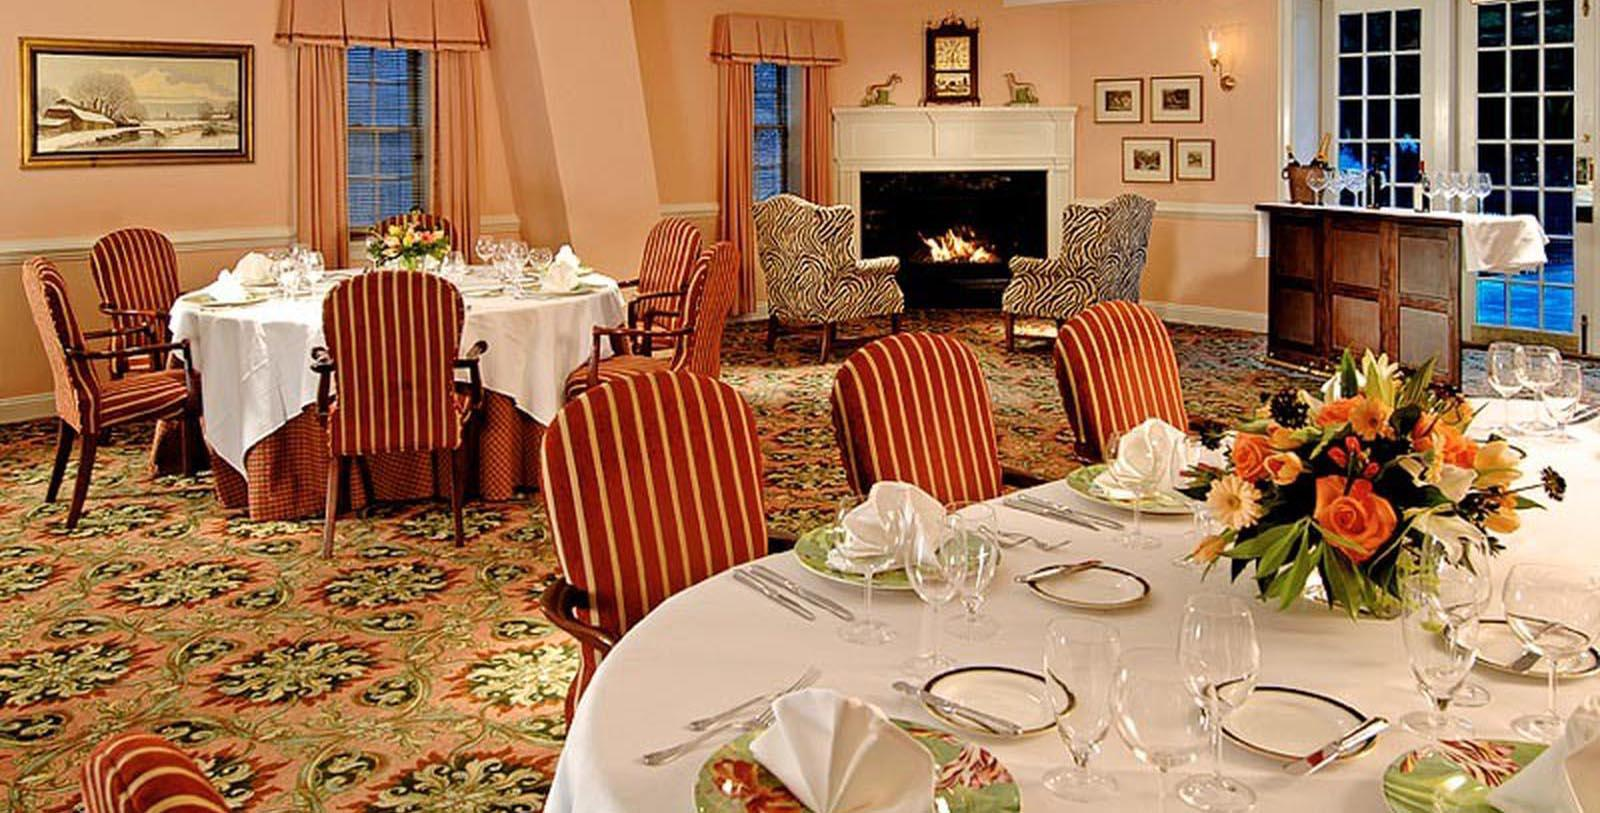 Image of Dining Area The Inn at Montchanin Village, 1799, Member of Historic Hotels of America, in Montchanin, Delaware, Experience